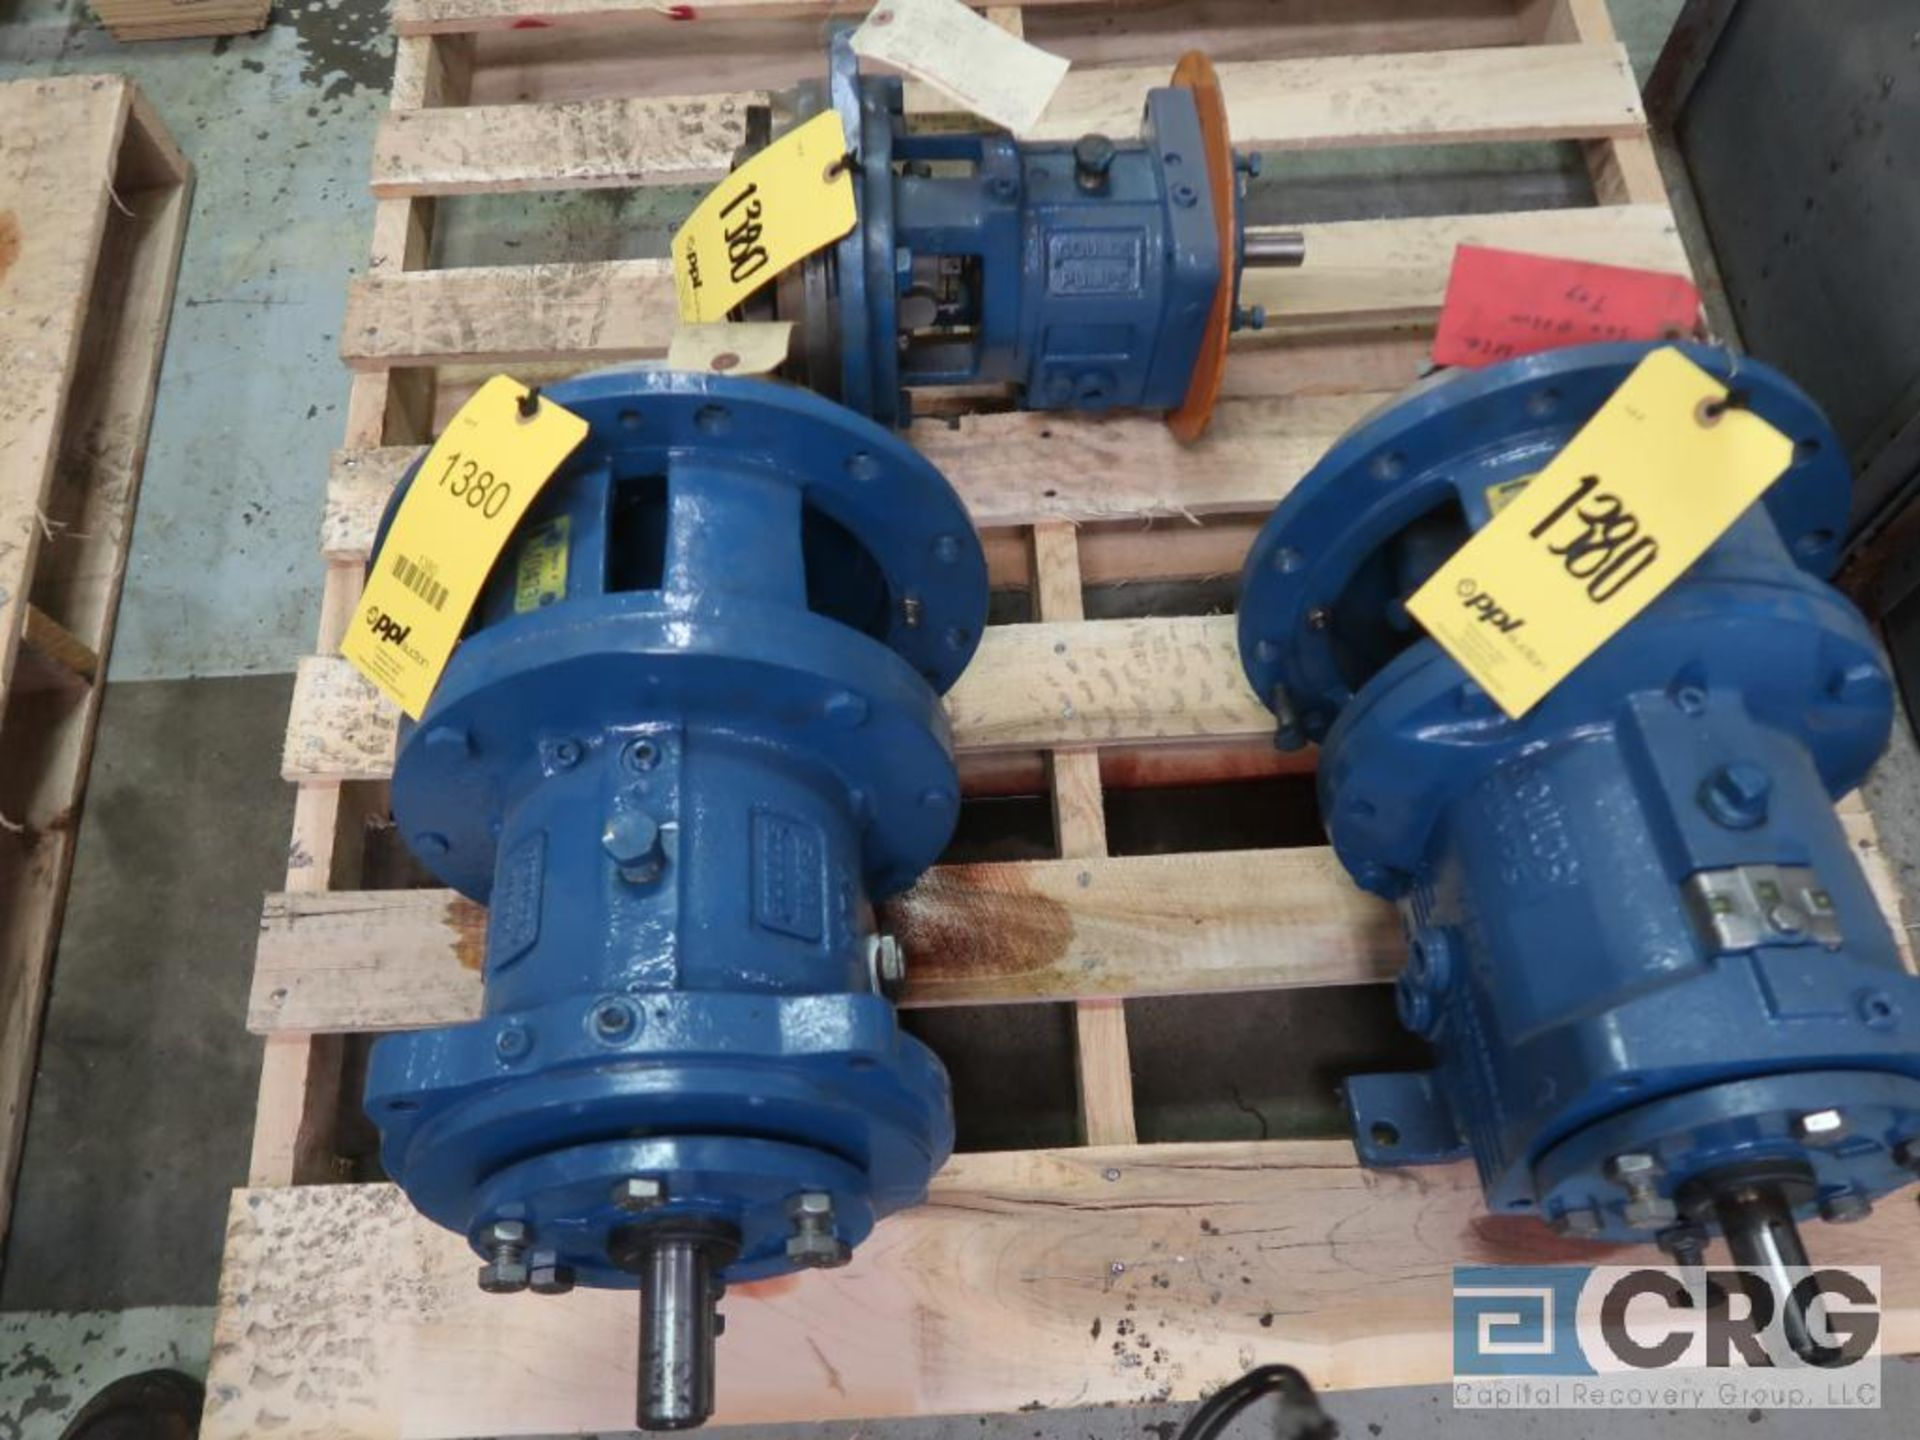 Lot of (3) Goulds 3196 pumps, (1) STX 8 in., (1) MTI 10 in., and (1) MTX 10 in. (Basement Stores)